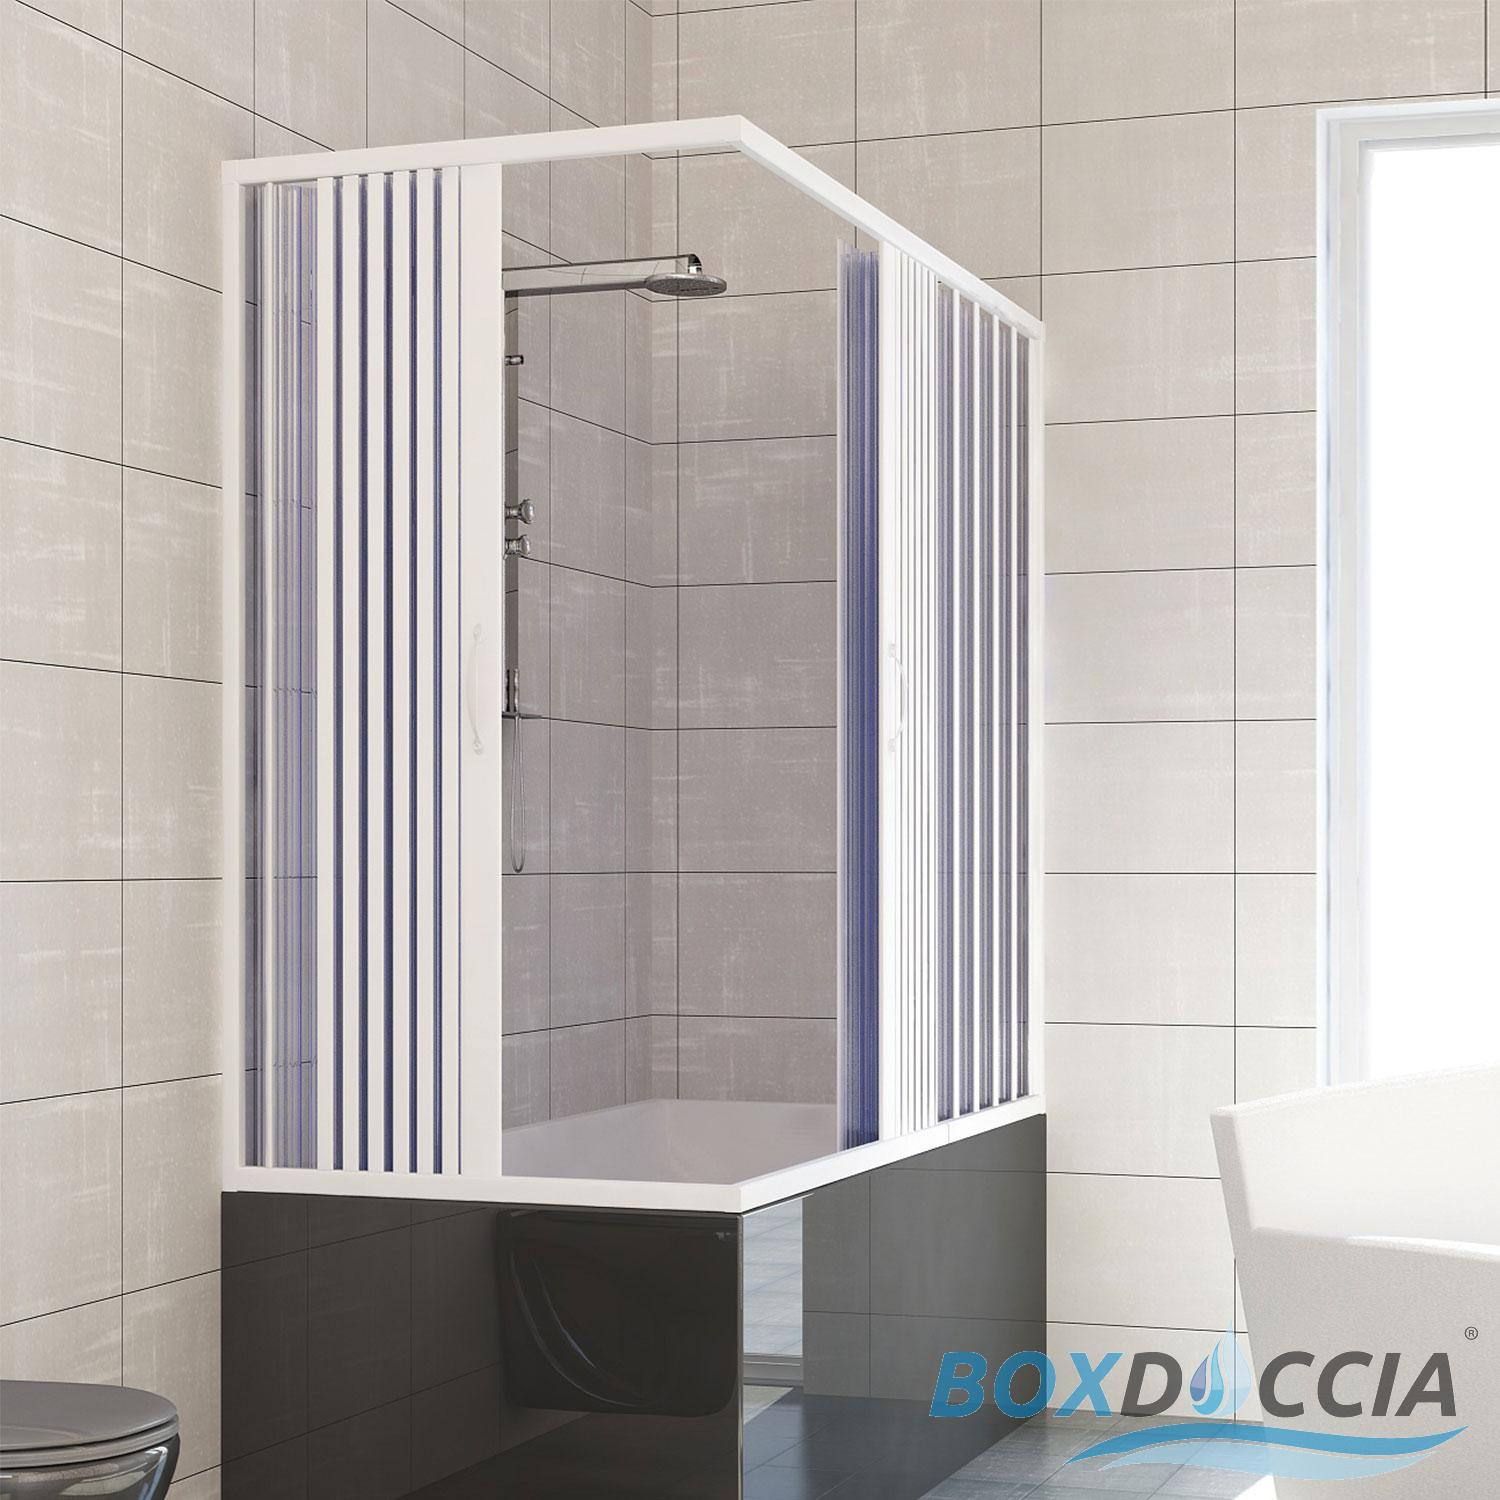 cabine de douche pare baignoire pliante paroi plastique pvc couleurs sur mesure ebay. Black Bedroom Furniture Sets. Home Design Ideas